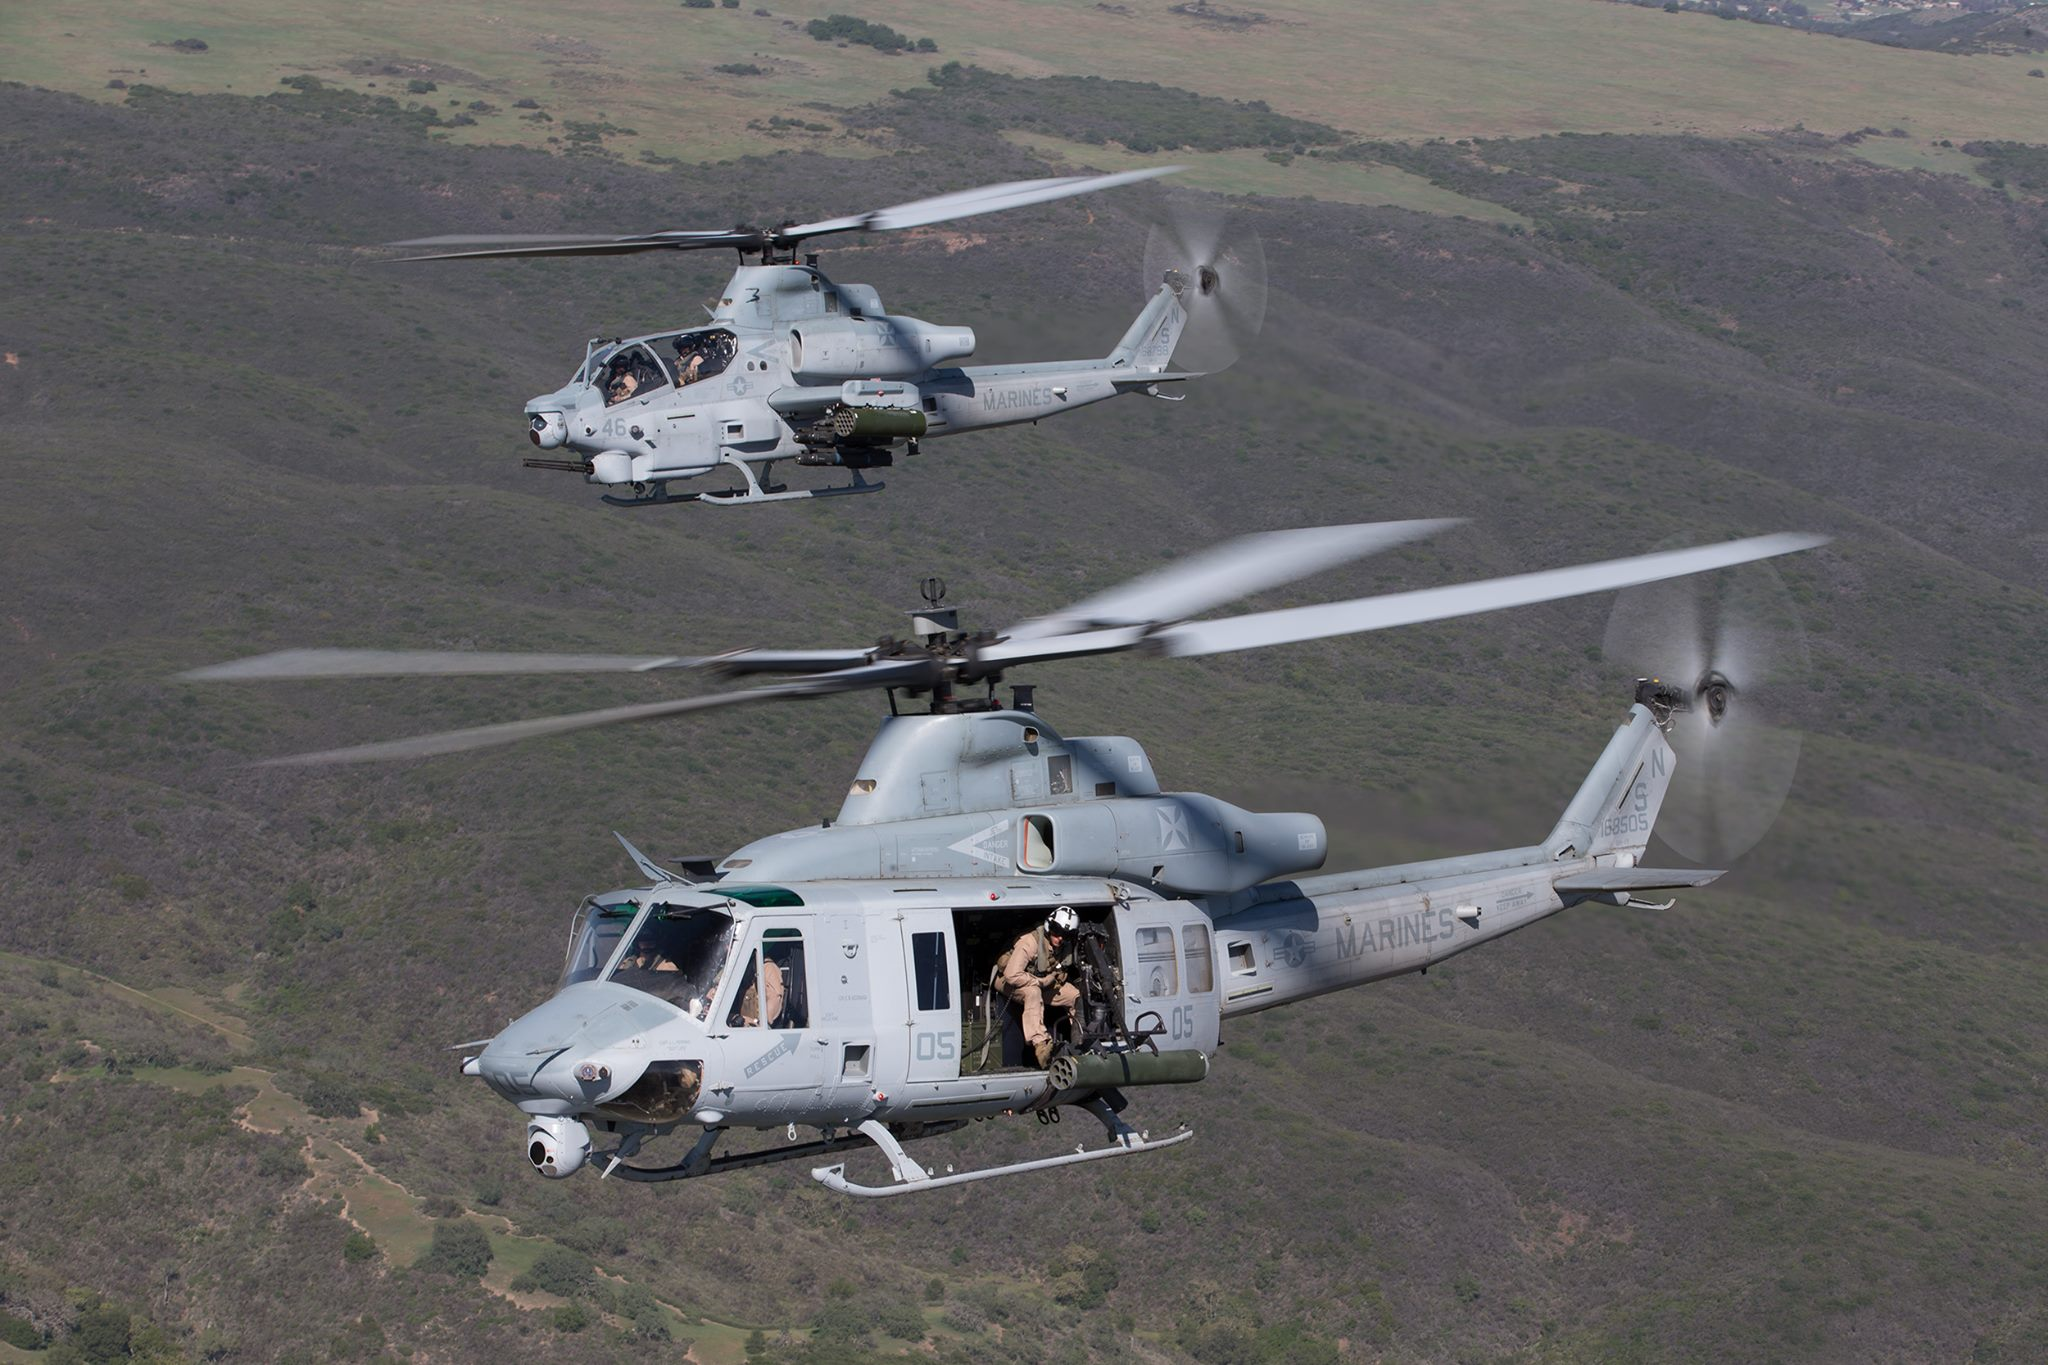 bell helicopter elicoptere